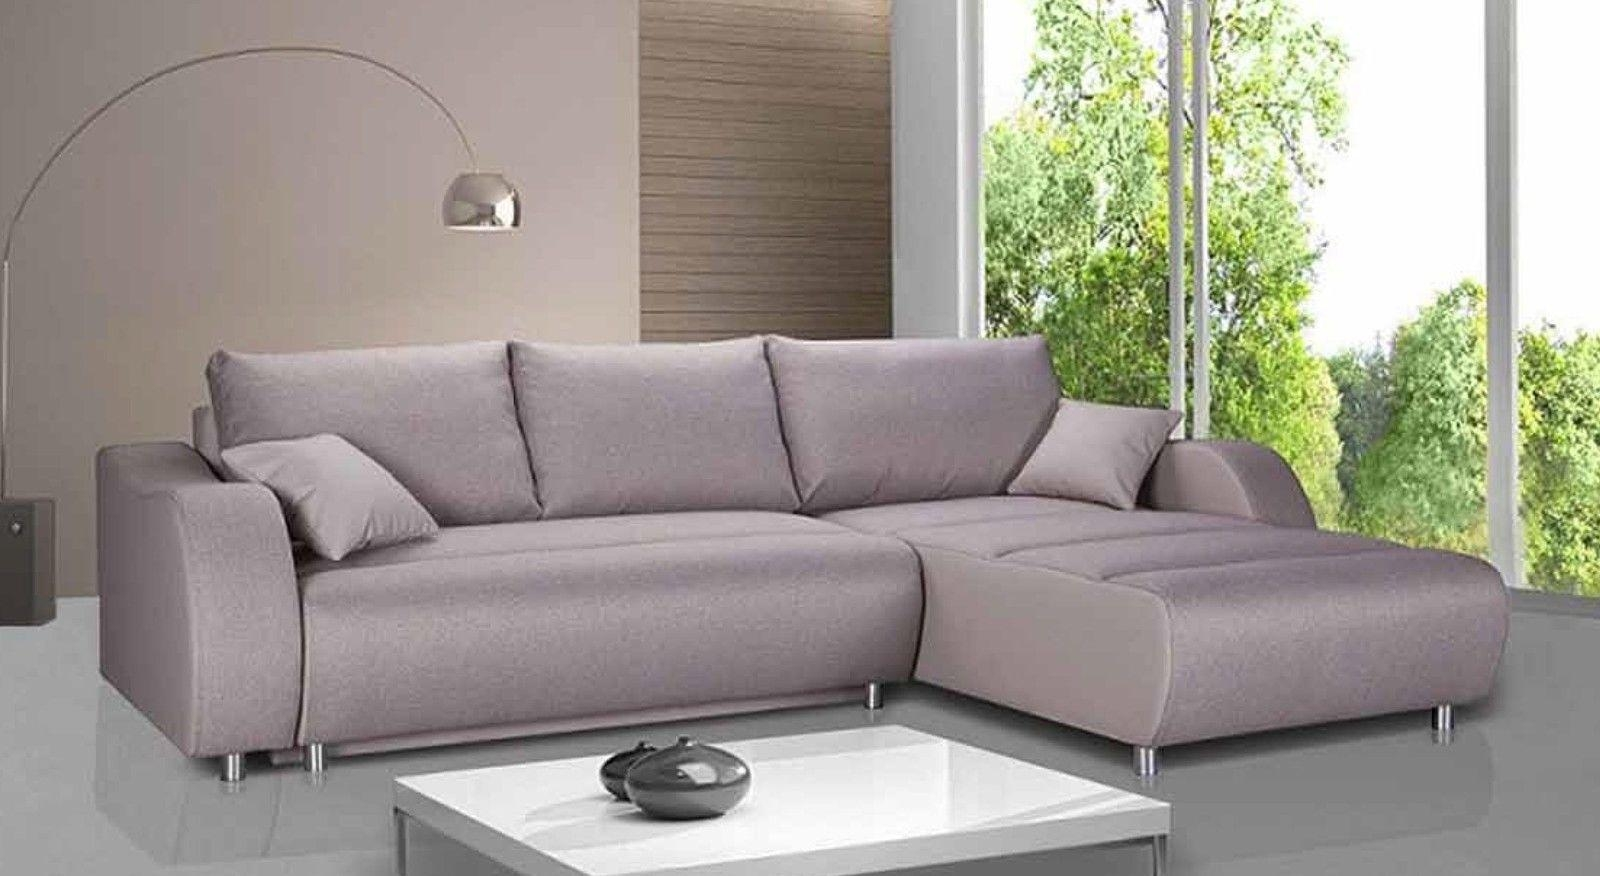 Dfs Corner Sofa Beds – Leather Sectional Sofa Intended For Cheap Corner Sofas (Image 8 of 20)